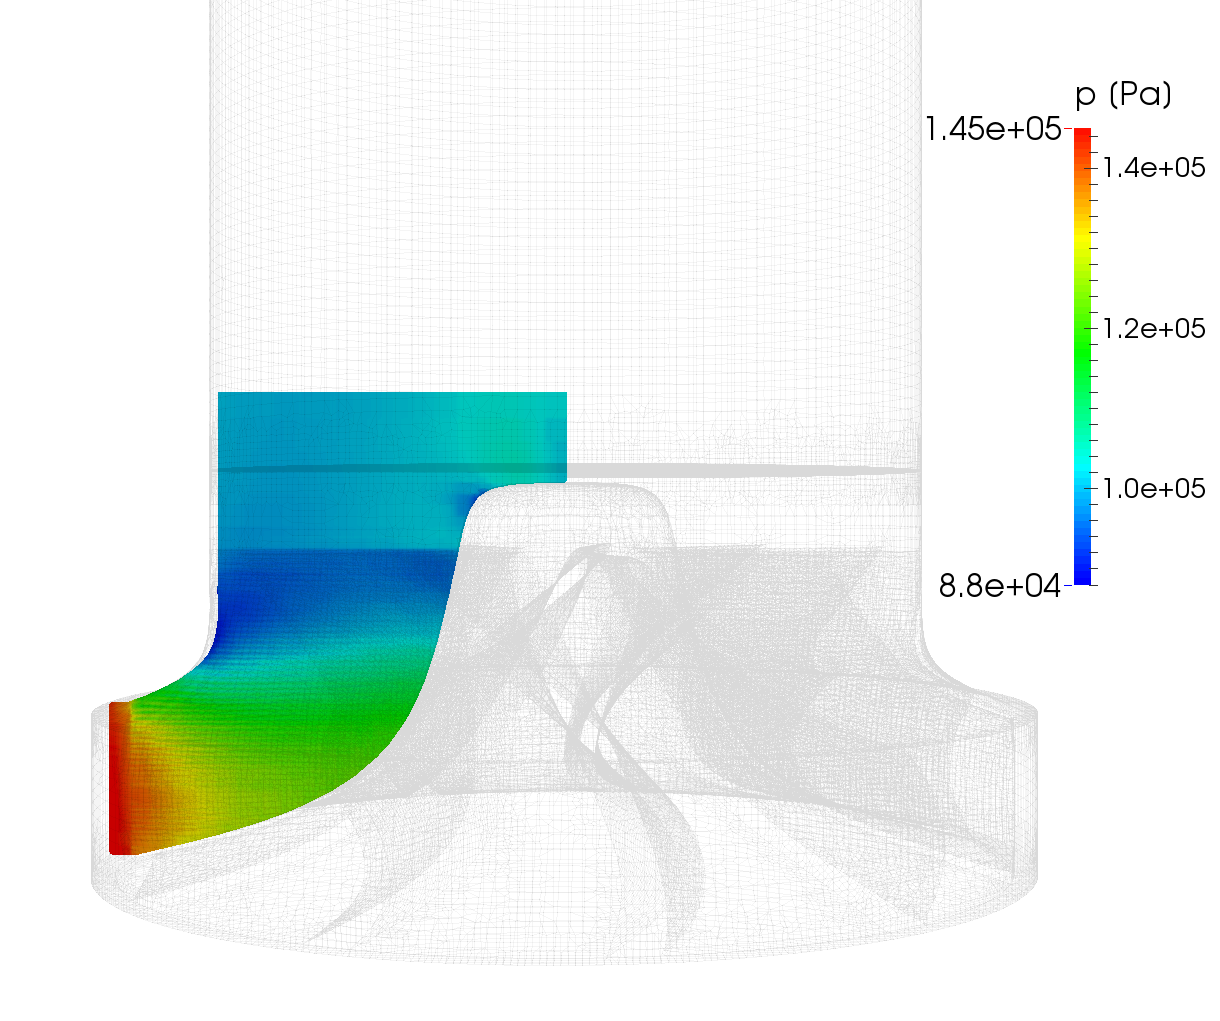 CFturbo-TurbomachineryCFD-radial-turbine-impeller-pressure-2-meridional-average